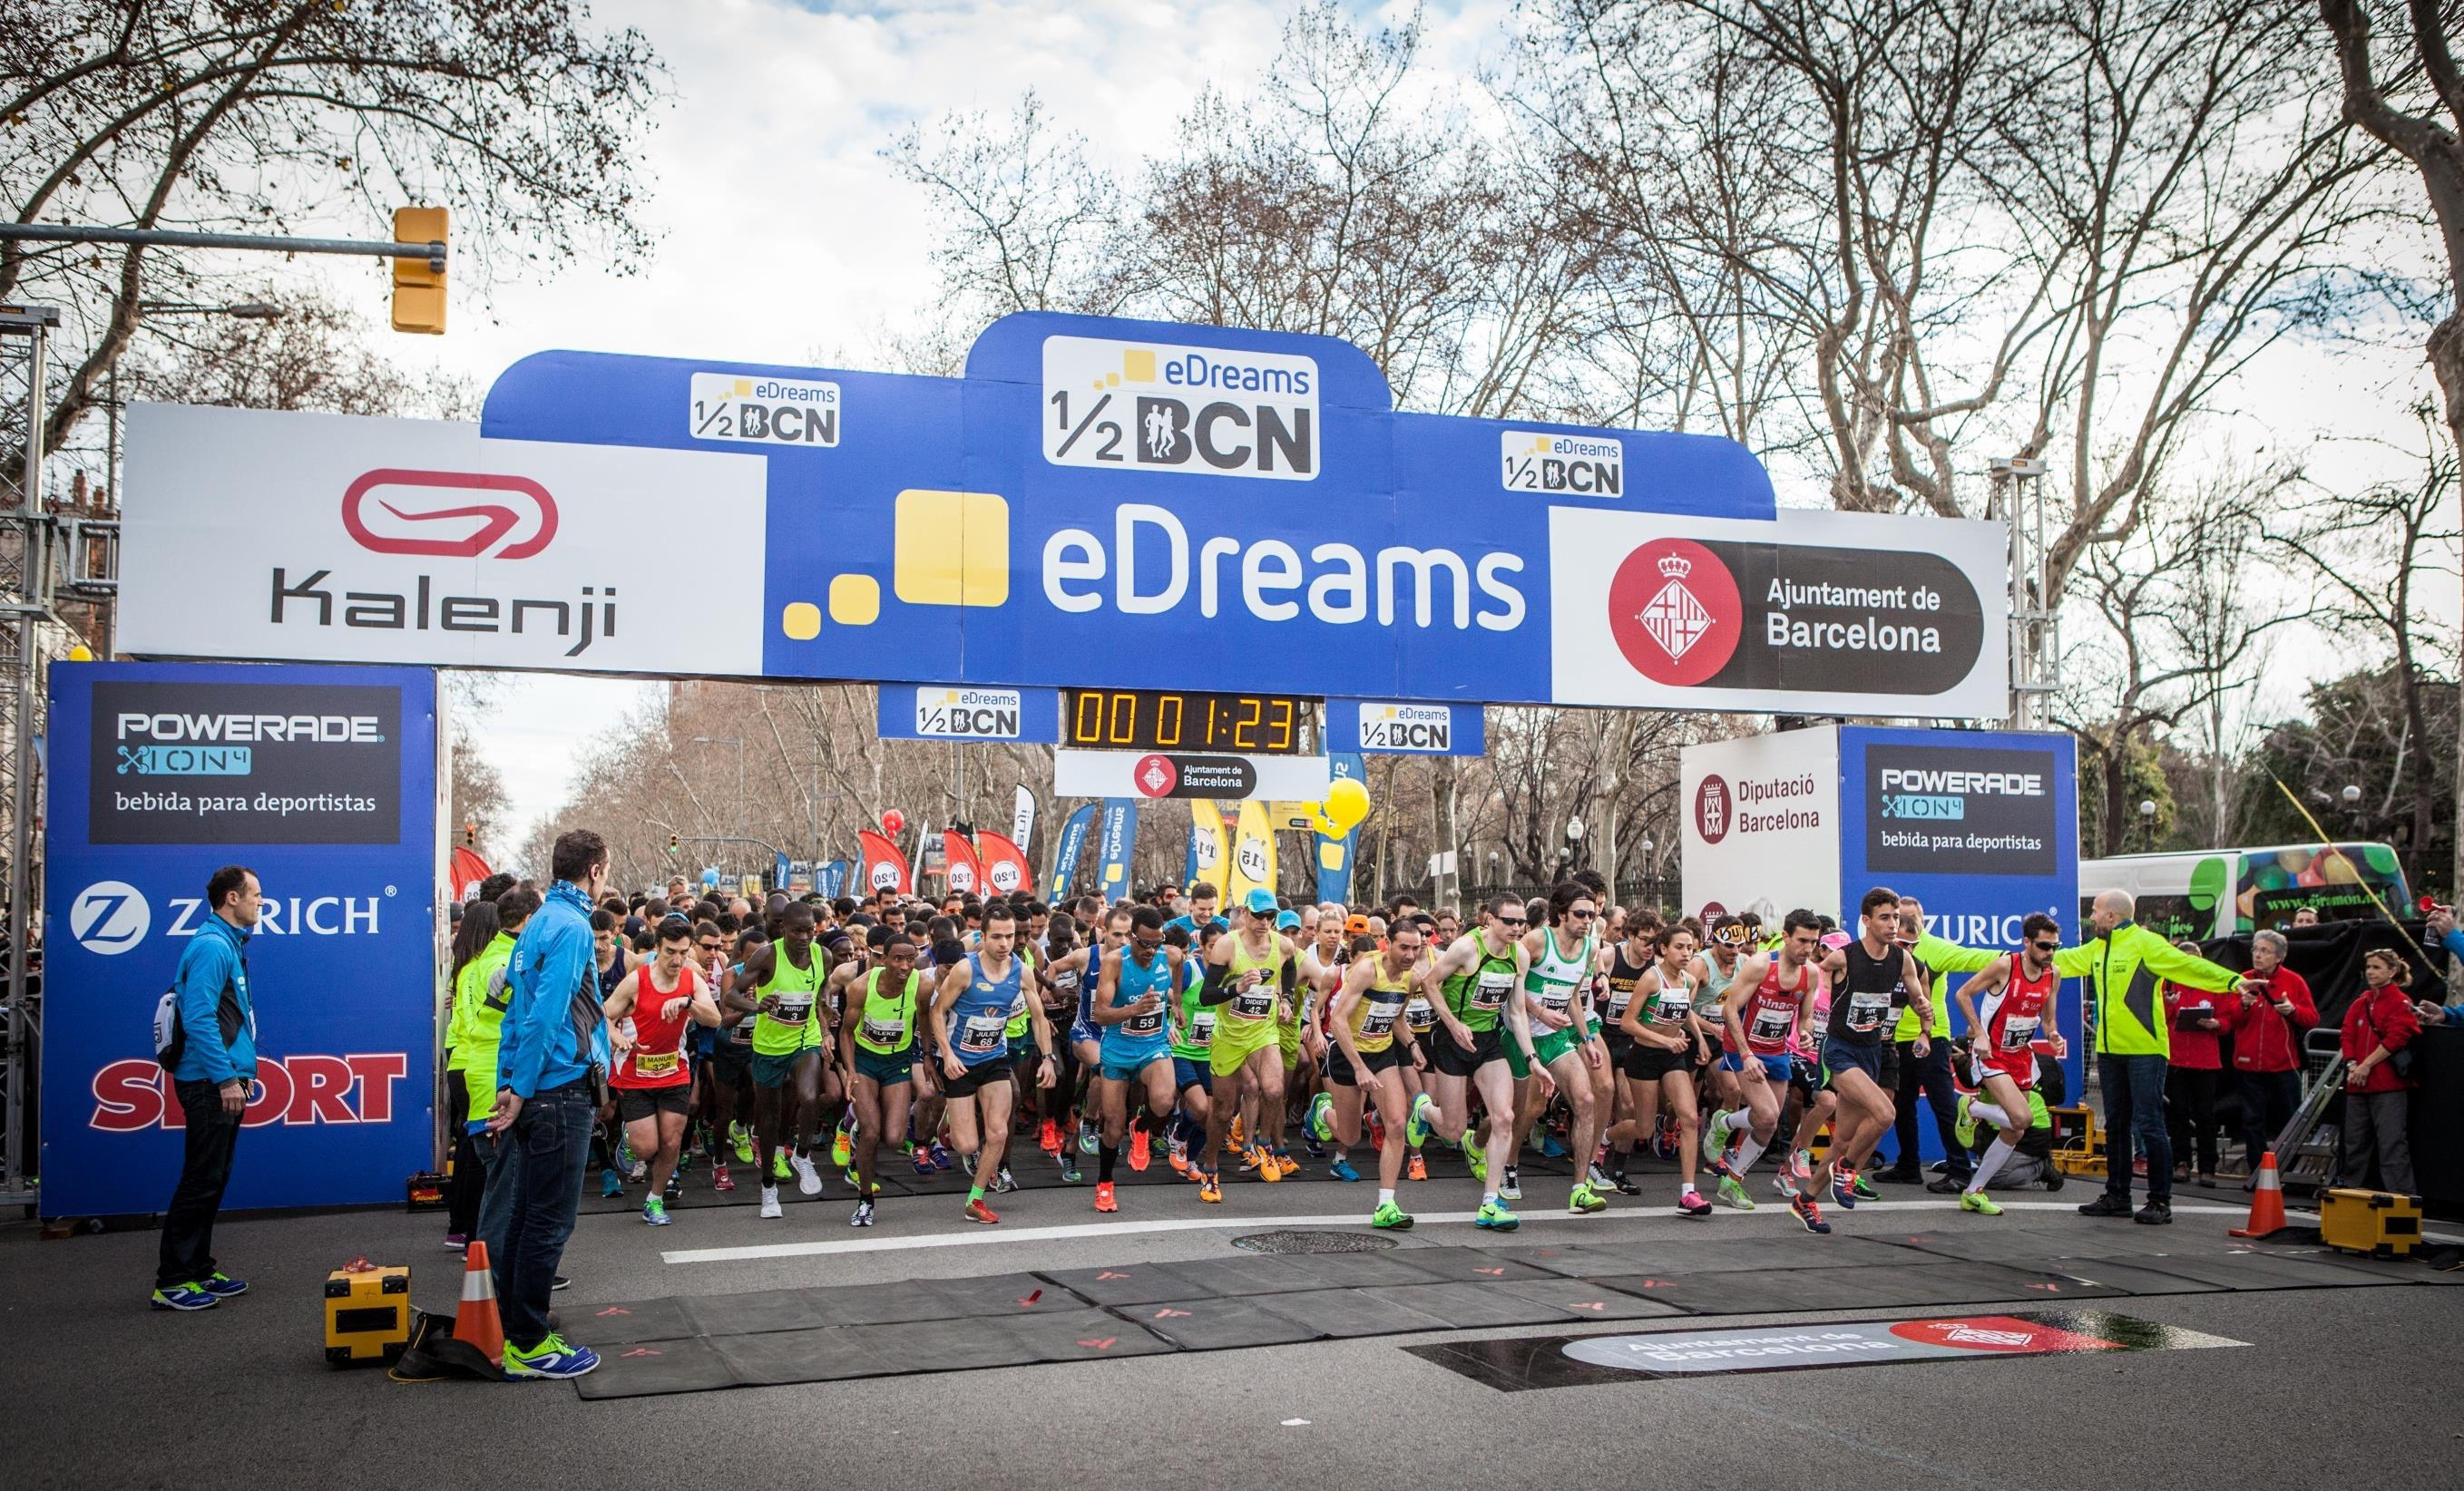 Mitja Marato Barcelona will be upgraded as an IAAF Gold Label road race